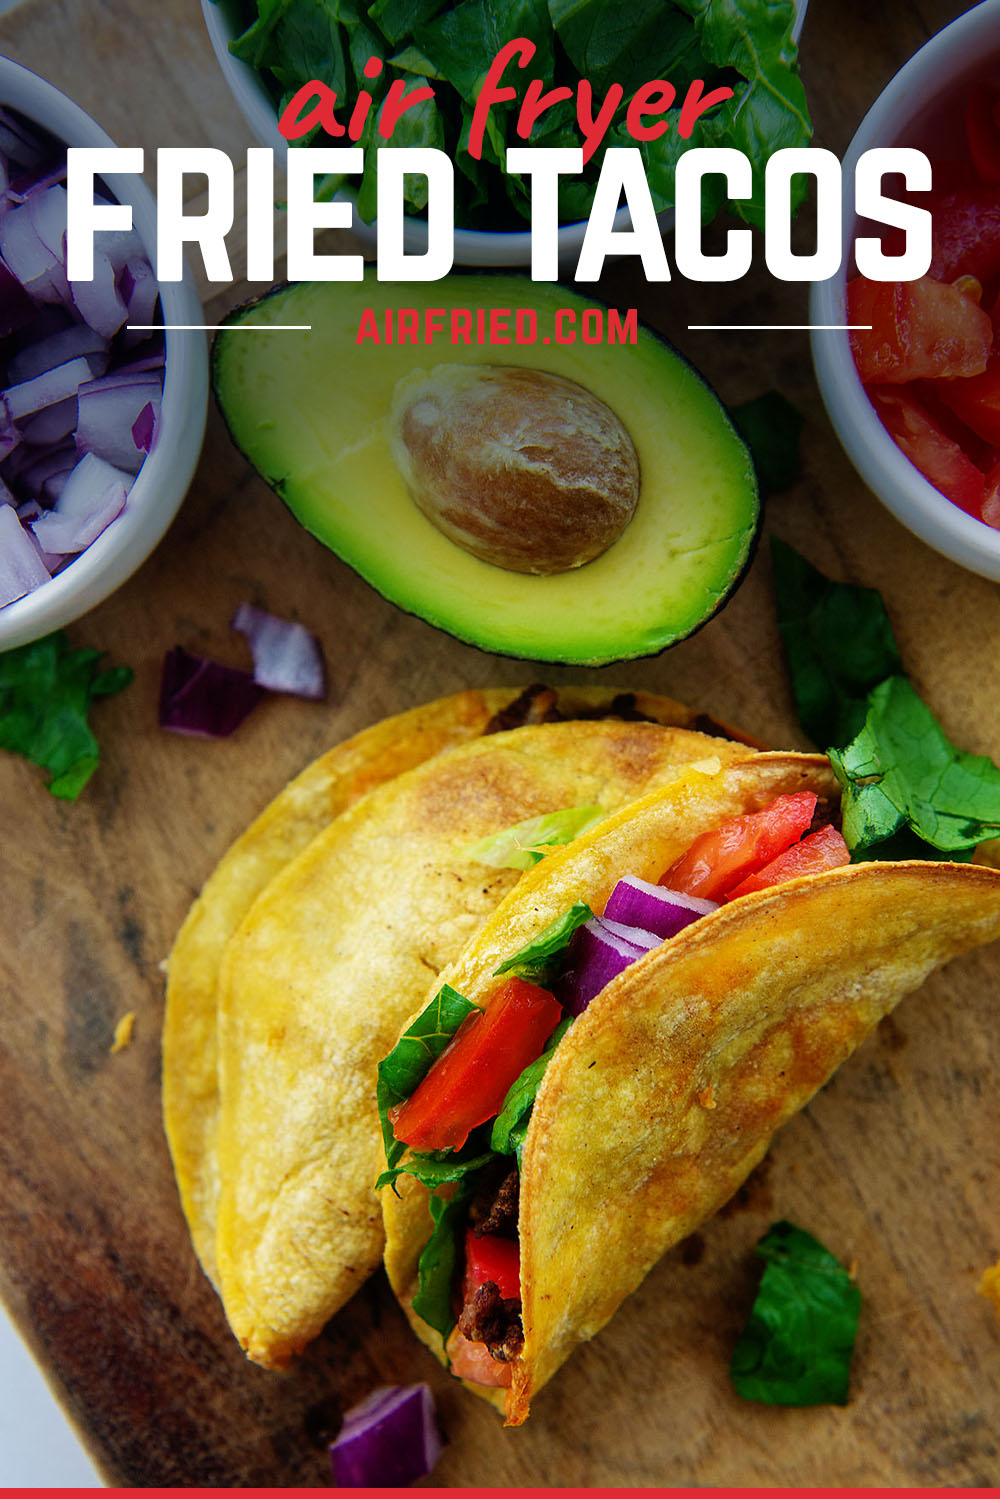 The air fryer tacos are much healthier than fried tacos since they have so much less grease in them!